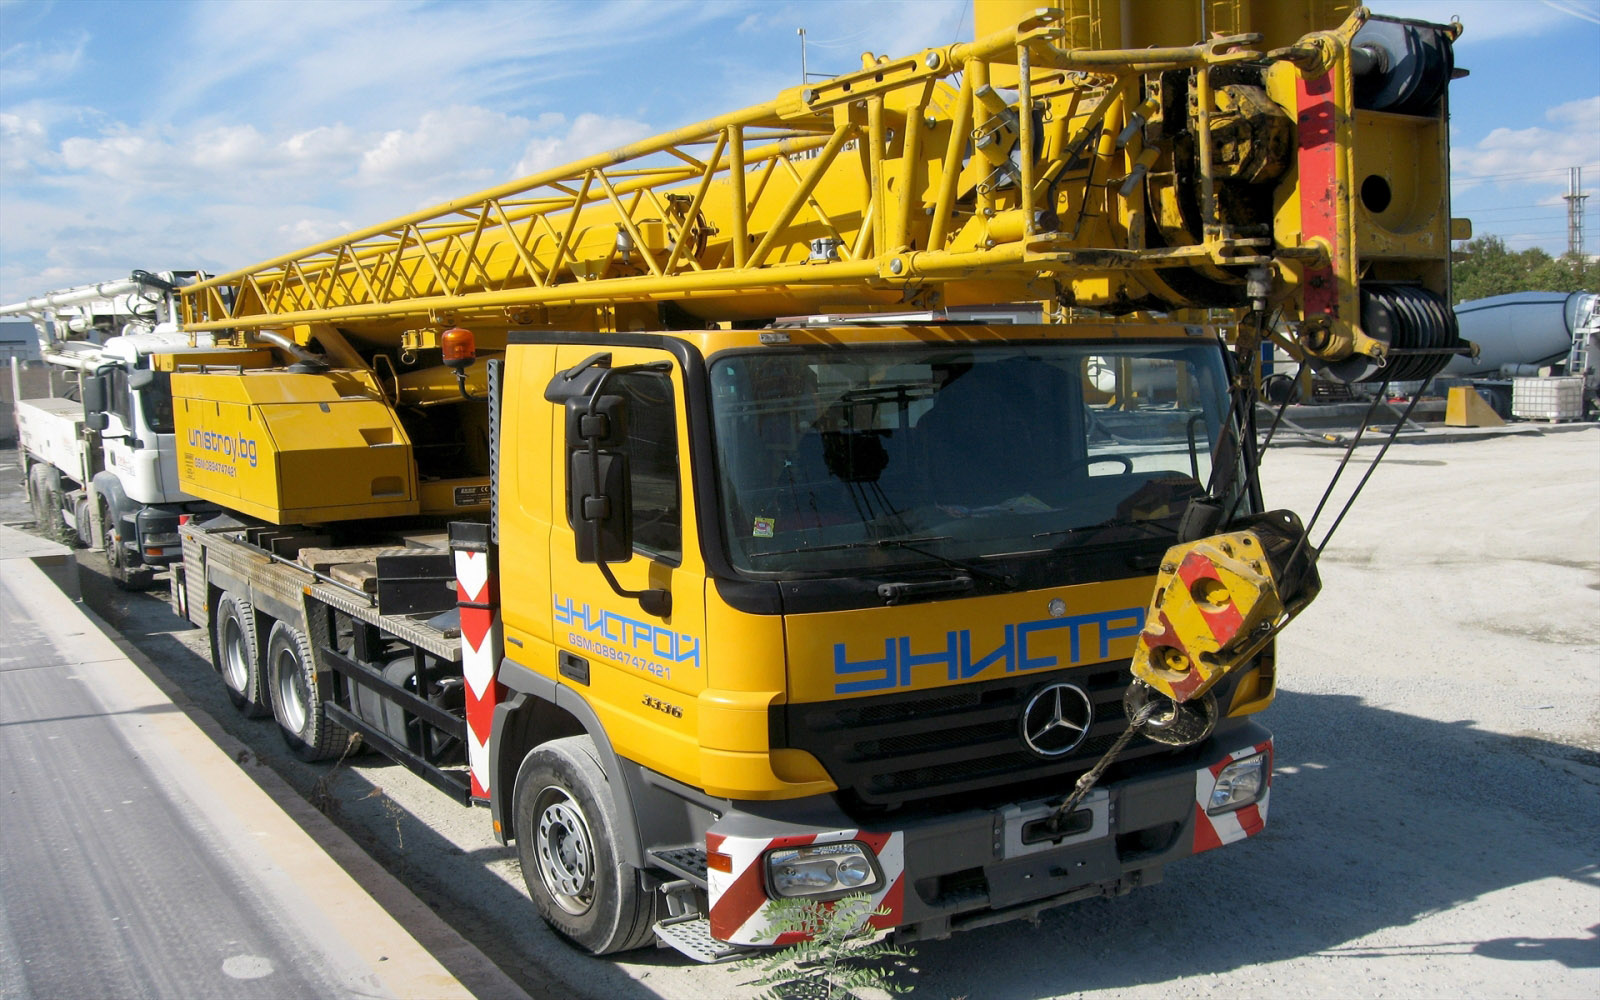 UNISTROY PURCHASED A LUNA AUTO CRANE